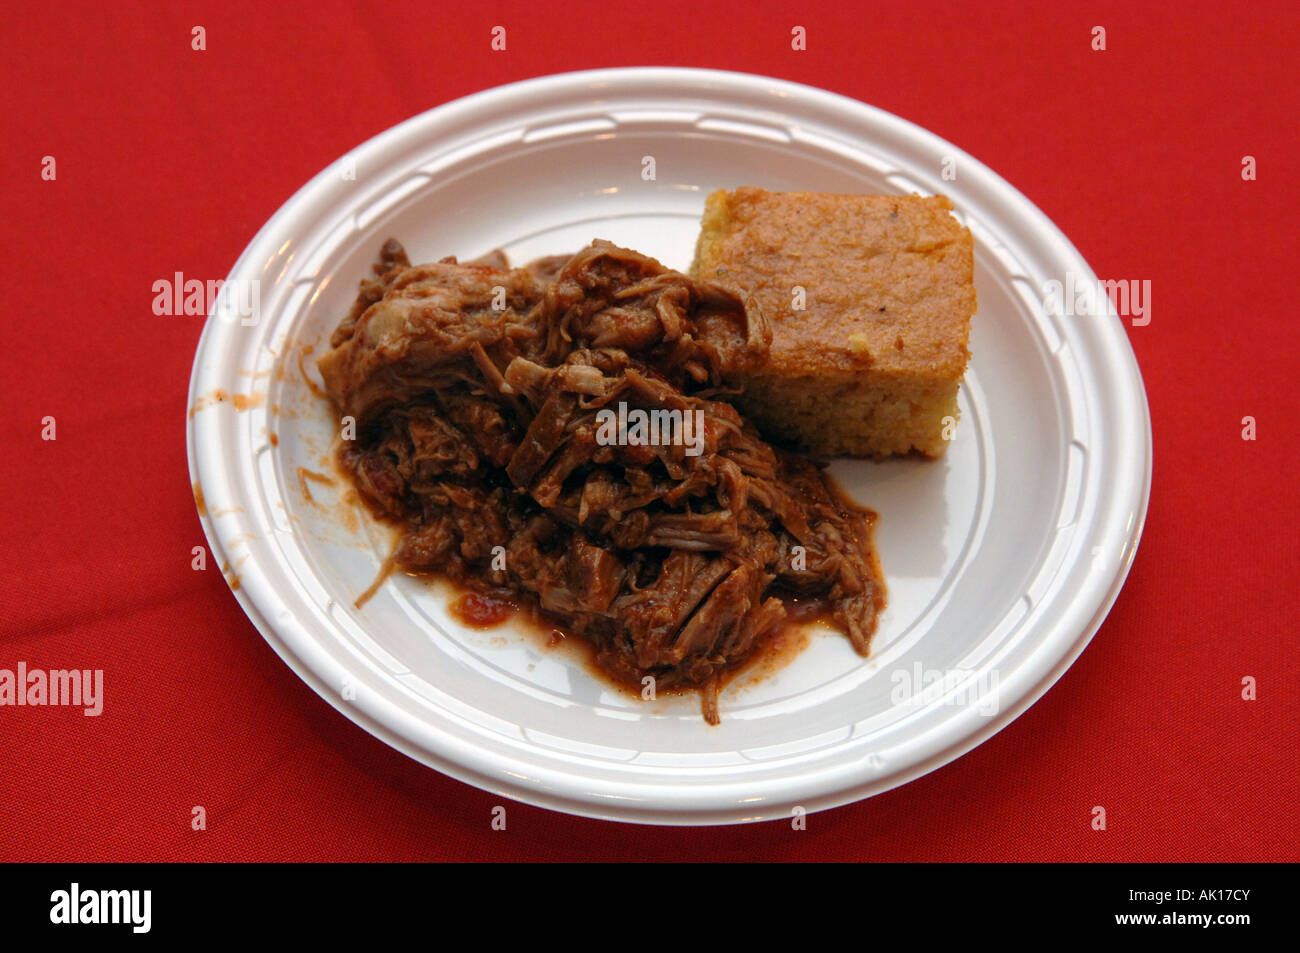 Plate of homemade BBQ pulled pork and cornbread - Stock Image